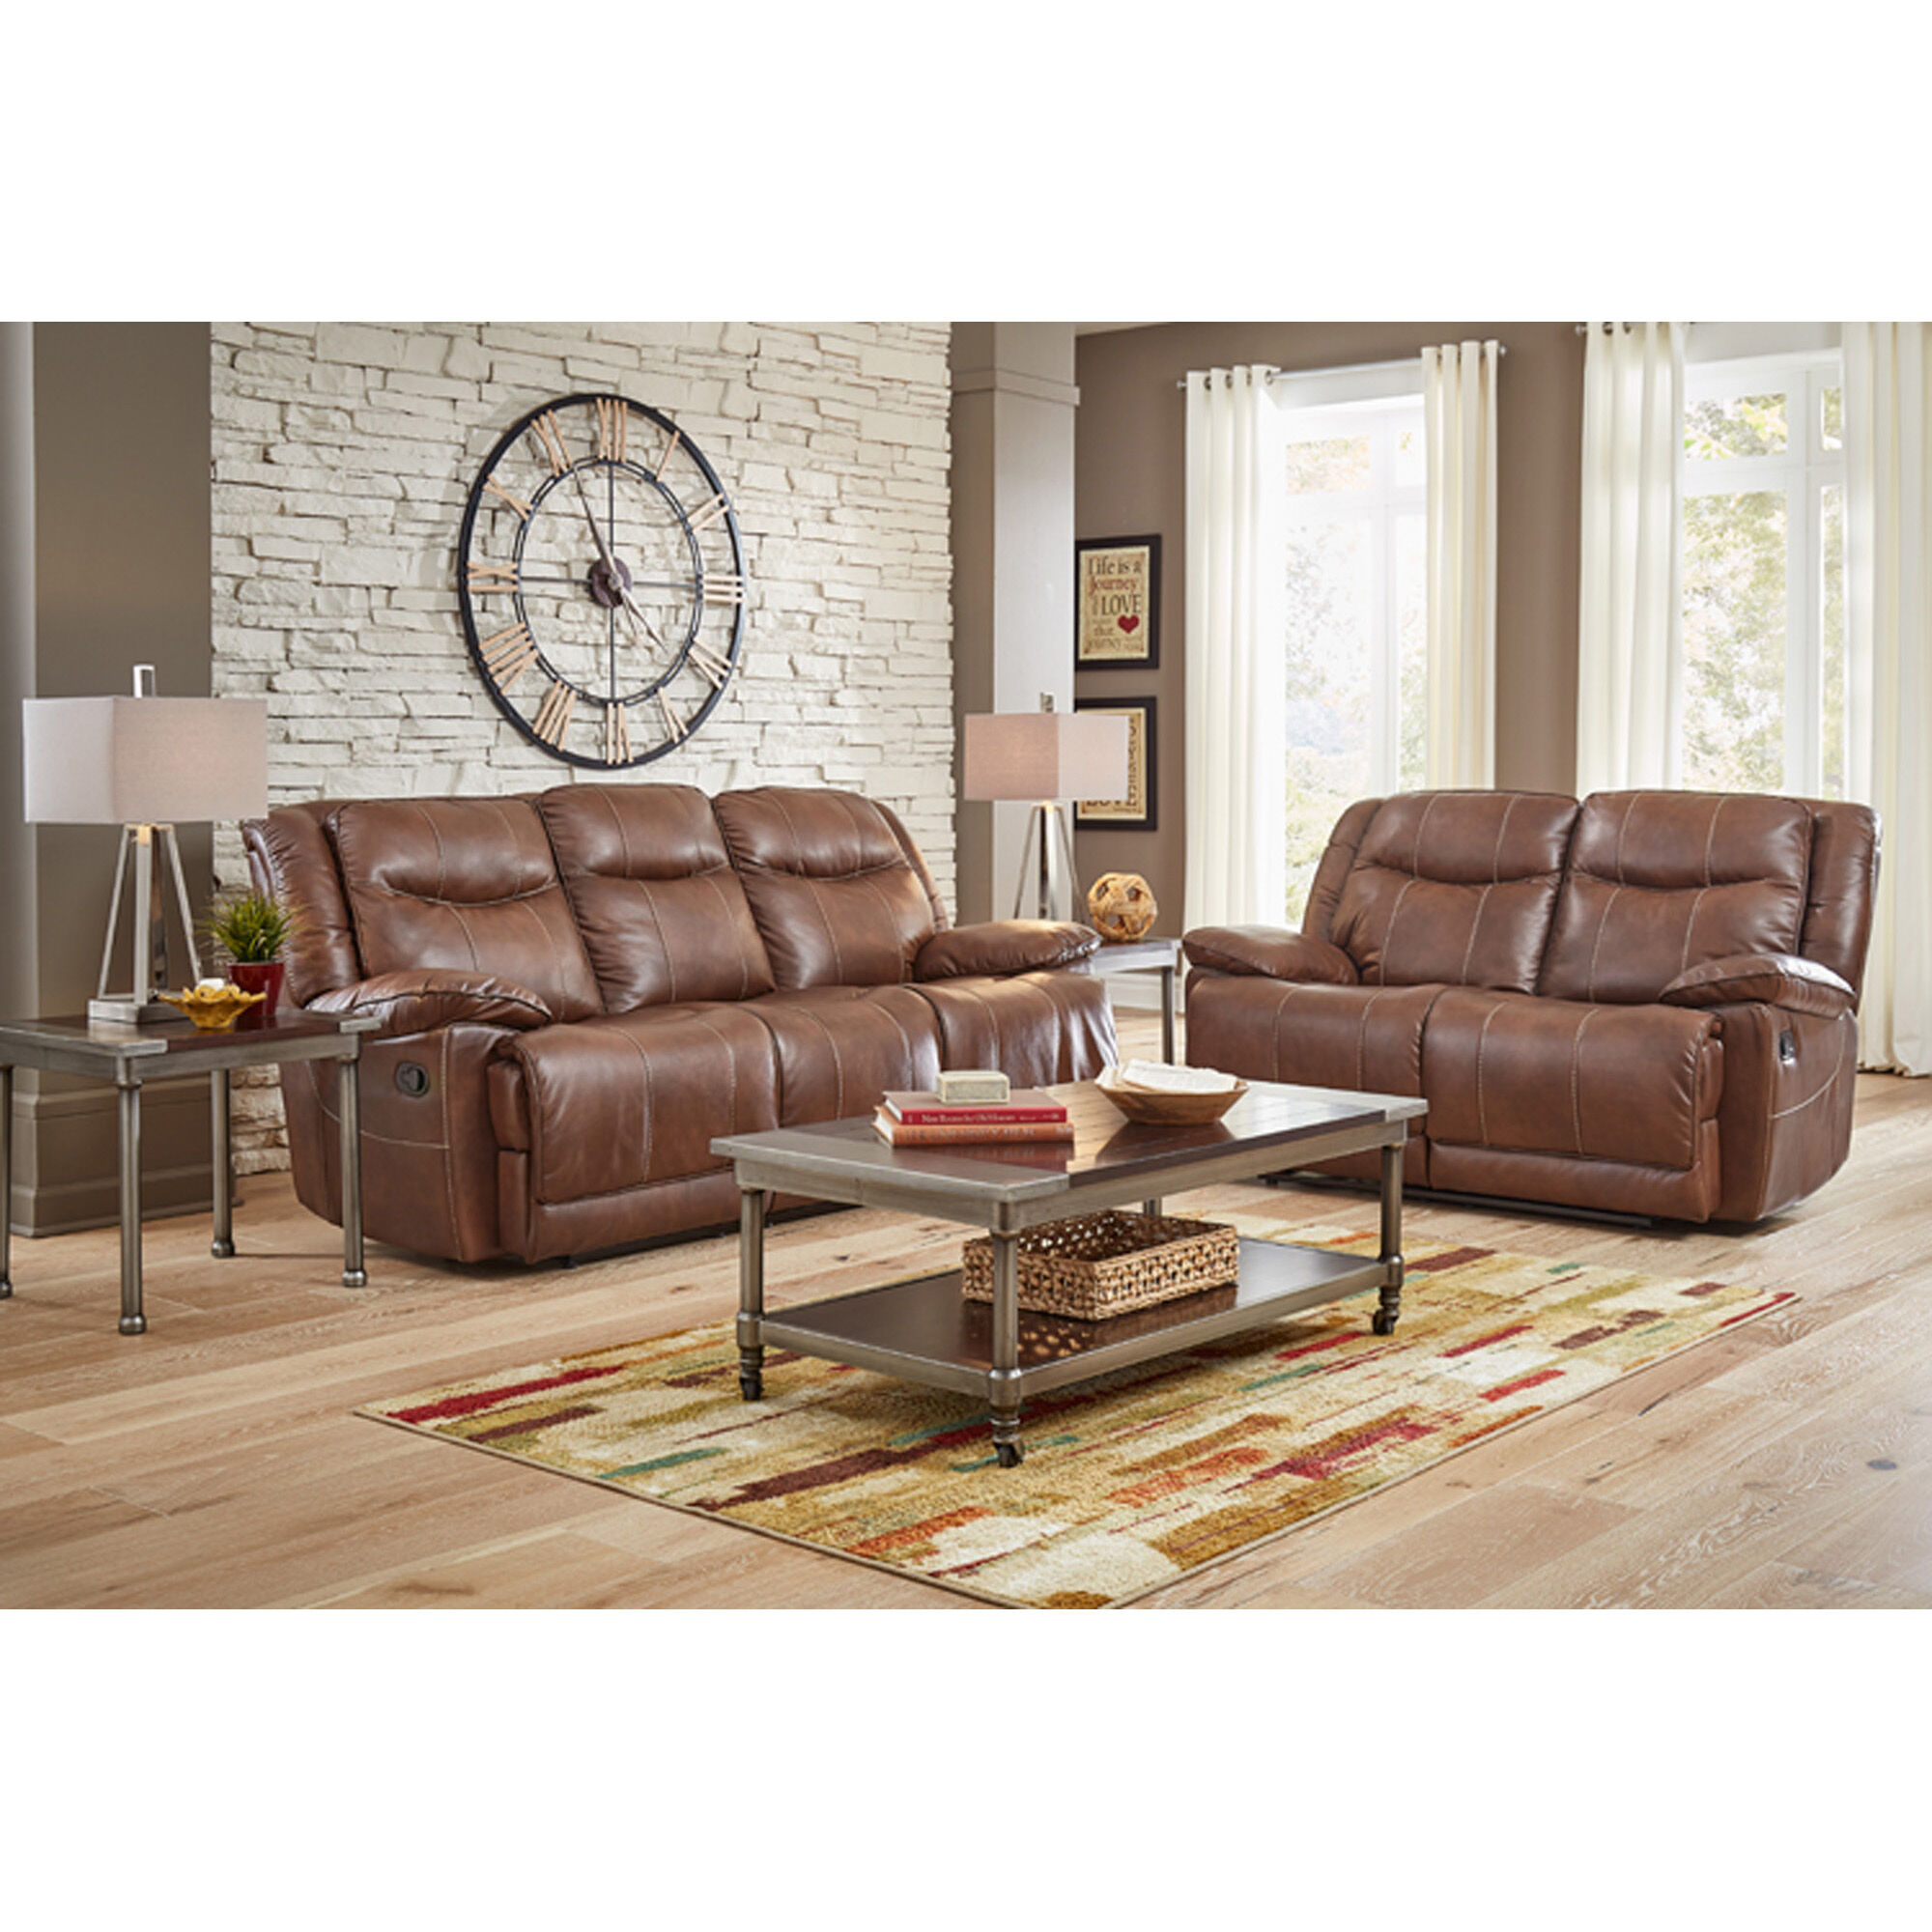 7 Piece Barron Reclining Living Room Collection